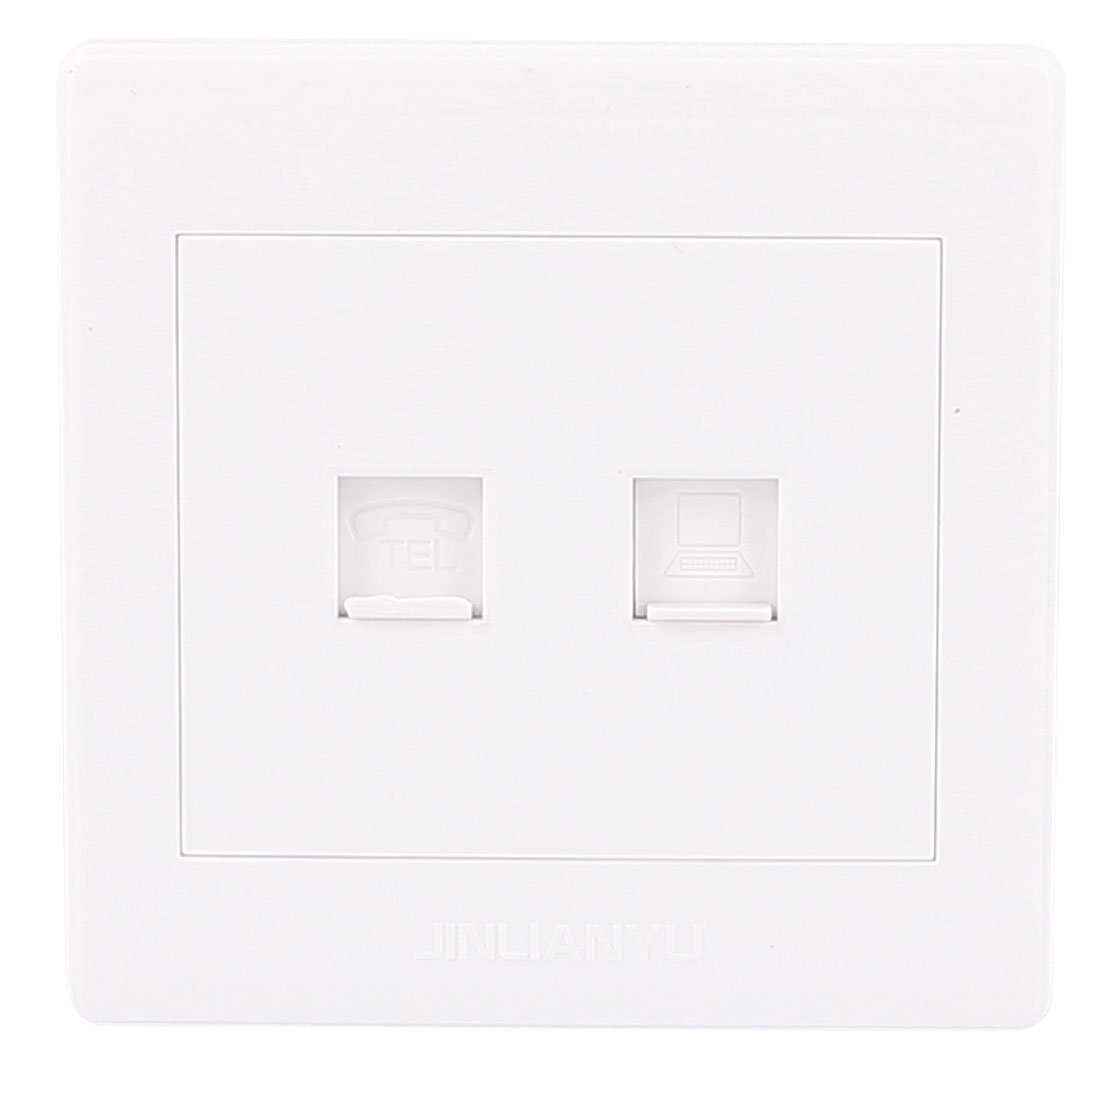 RJ11 Phone Connector Cable Outlet PC RJ45 8P8C Network Wall Socket Plate White